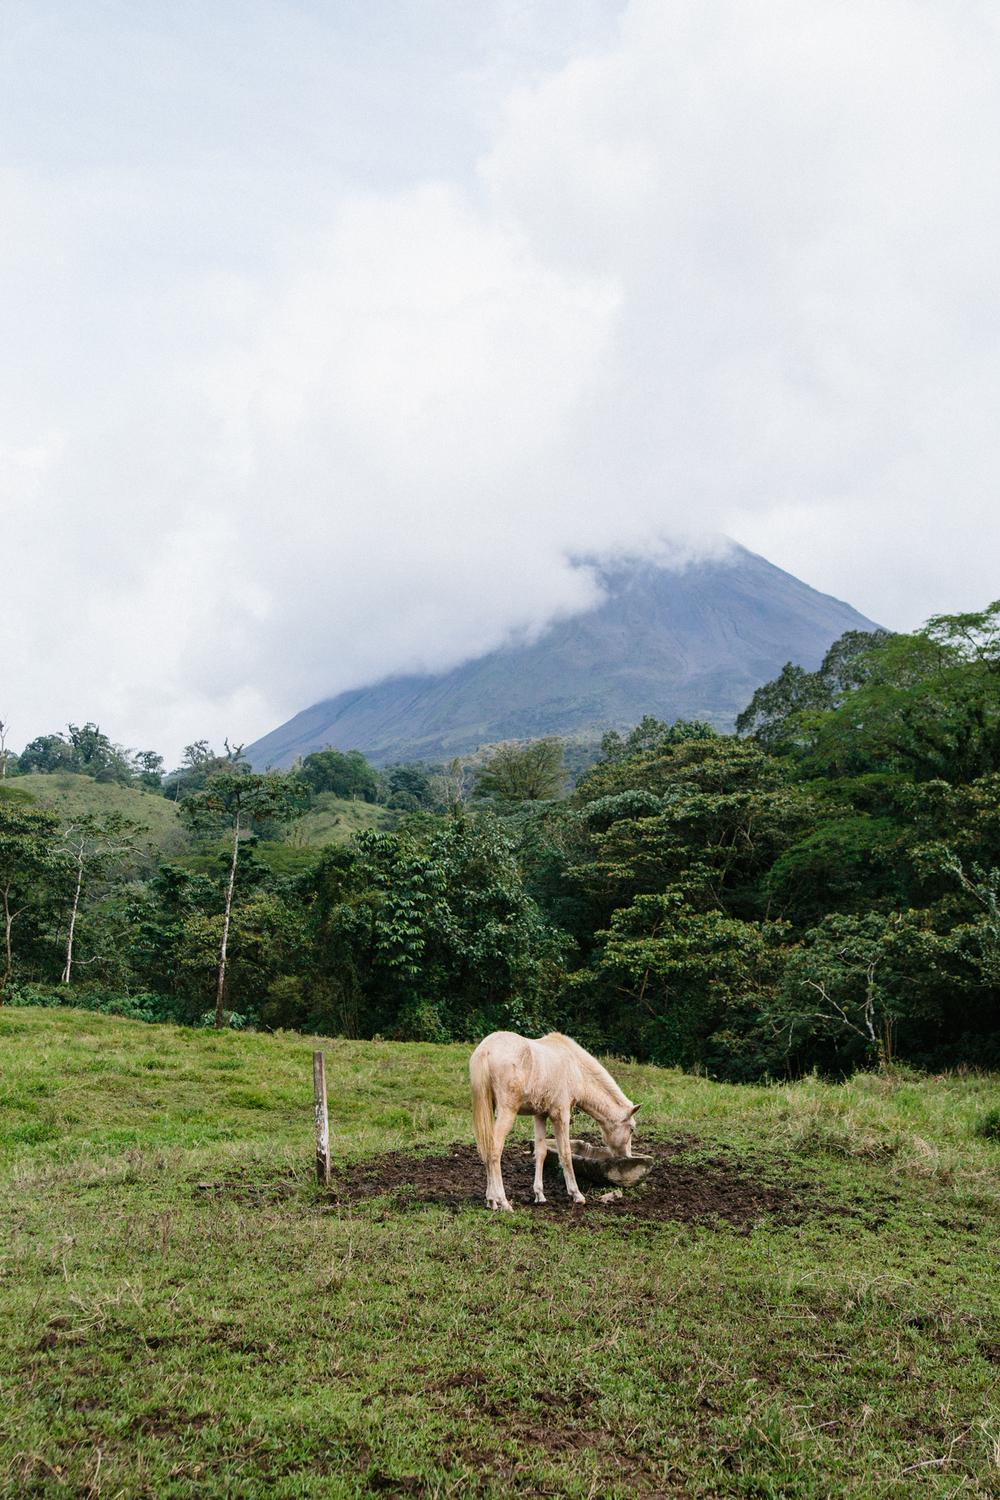 A beautiful horse peacefully drinks water and roams the green pastures that surround Arenal Volcano (seen covered by a layer of clouds in the background).